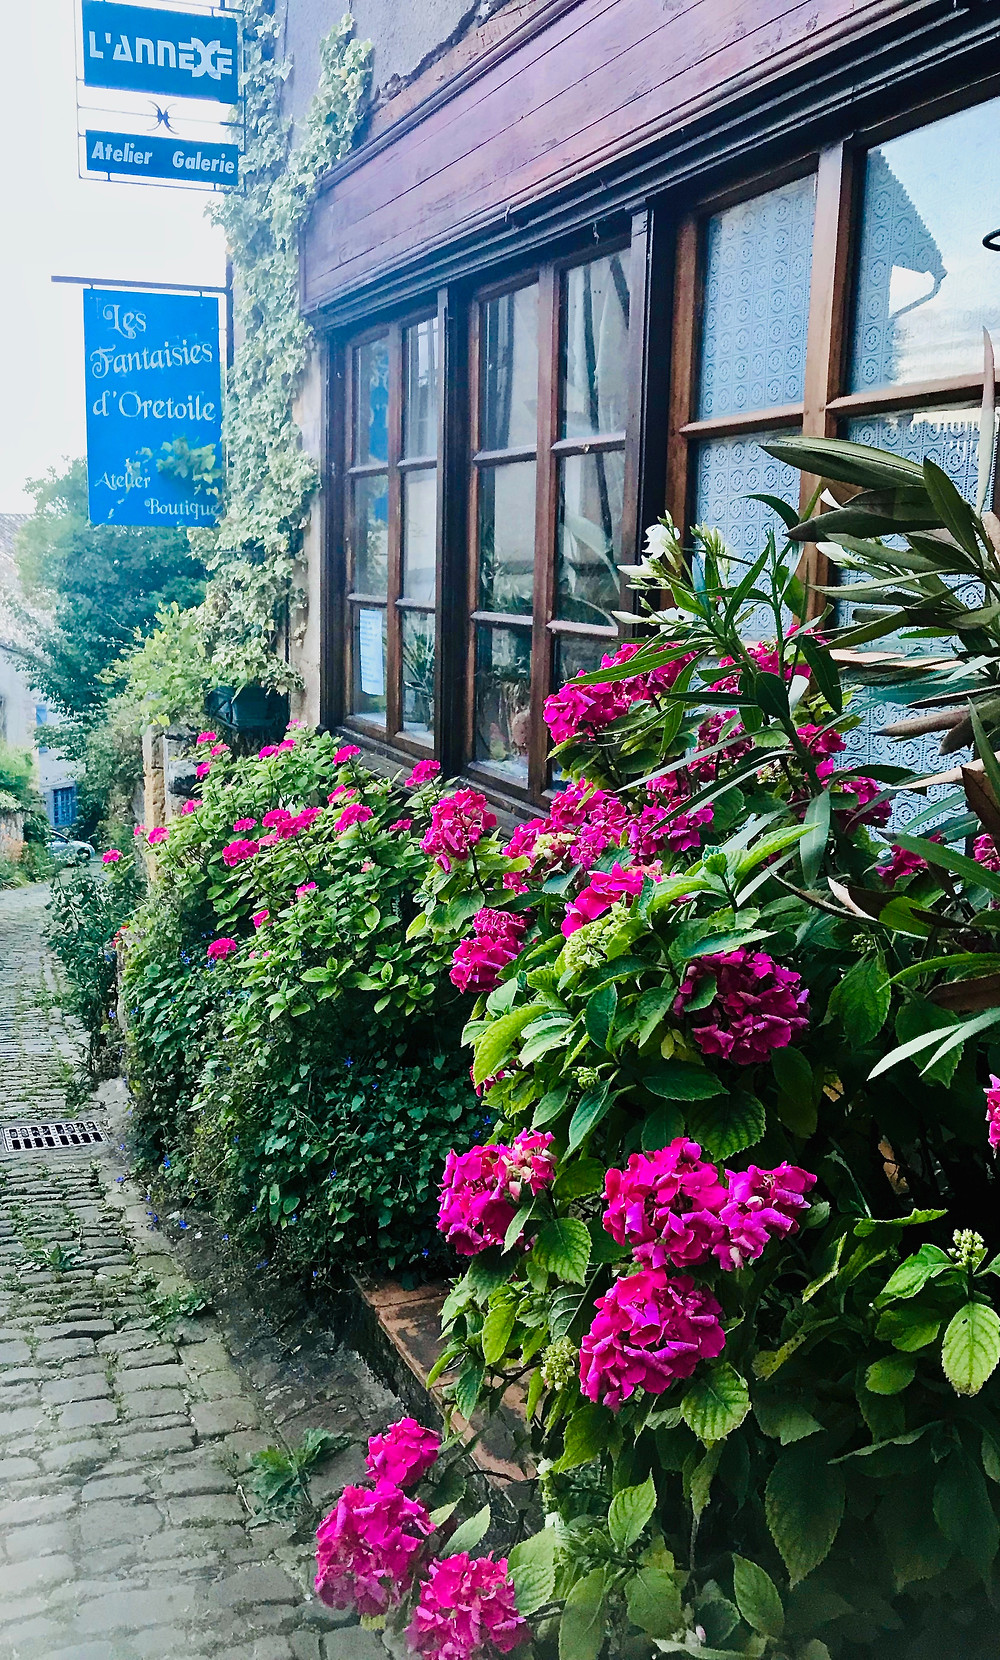 hydrangea bushes outside a restaurant in Cordes Sur Ciel